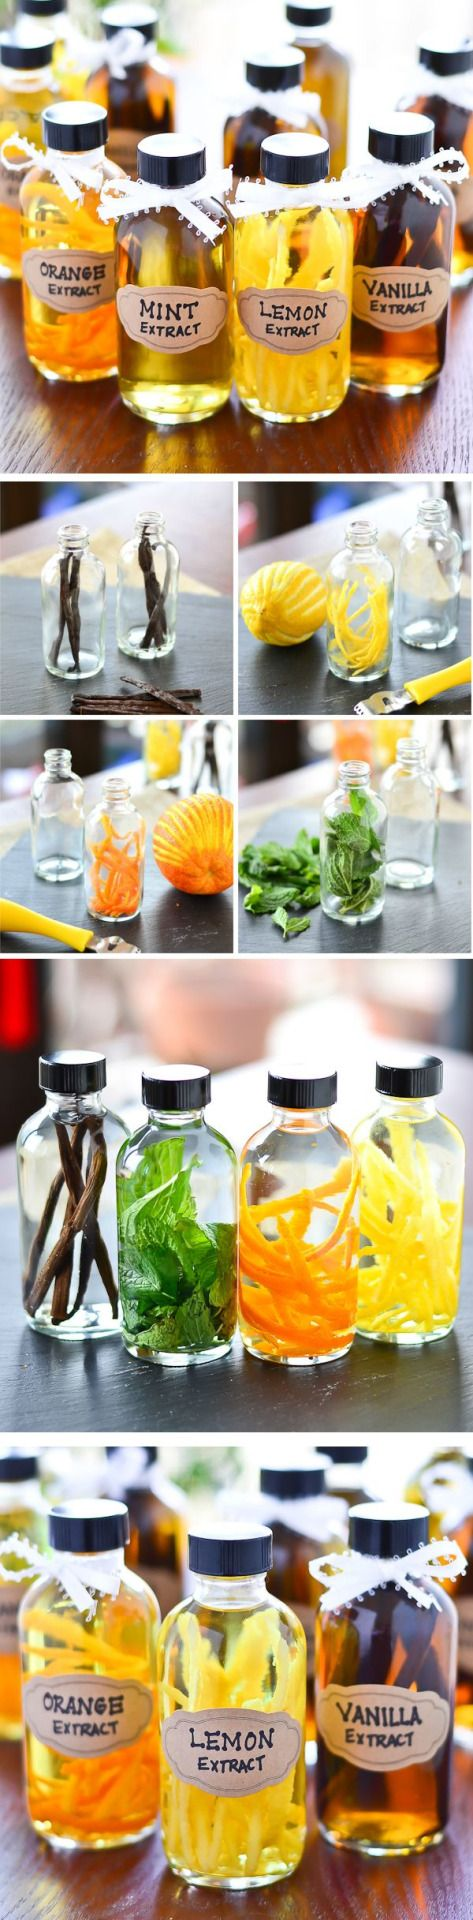 DIY Flavored Extracts - TIP: I use the best Vodka I have on hand to make flavored extracts around the holidays for baking. I get the bottles at my local natural foods store, and use any kind of fresh fruit or veggie flavor I want, like Vanilla Amaretto, Meyer Lemon, Clove and Cinnamon Stick, Ginger, Red Pepper, even those little Cinnamon Imperial Candies! ~~  Houston Foodlovers Book Club